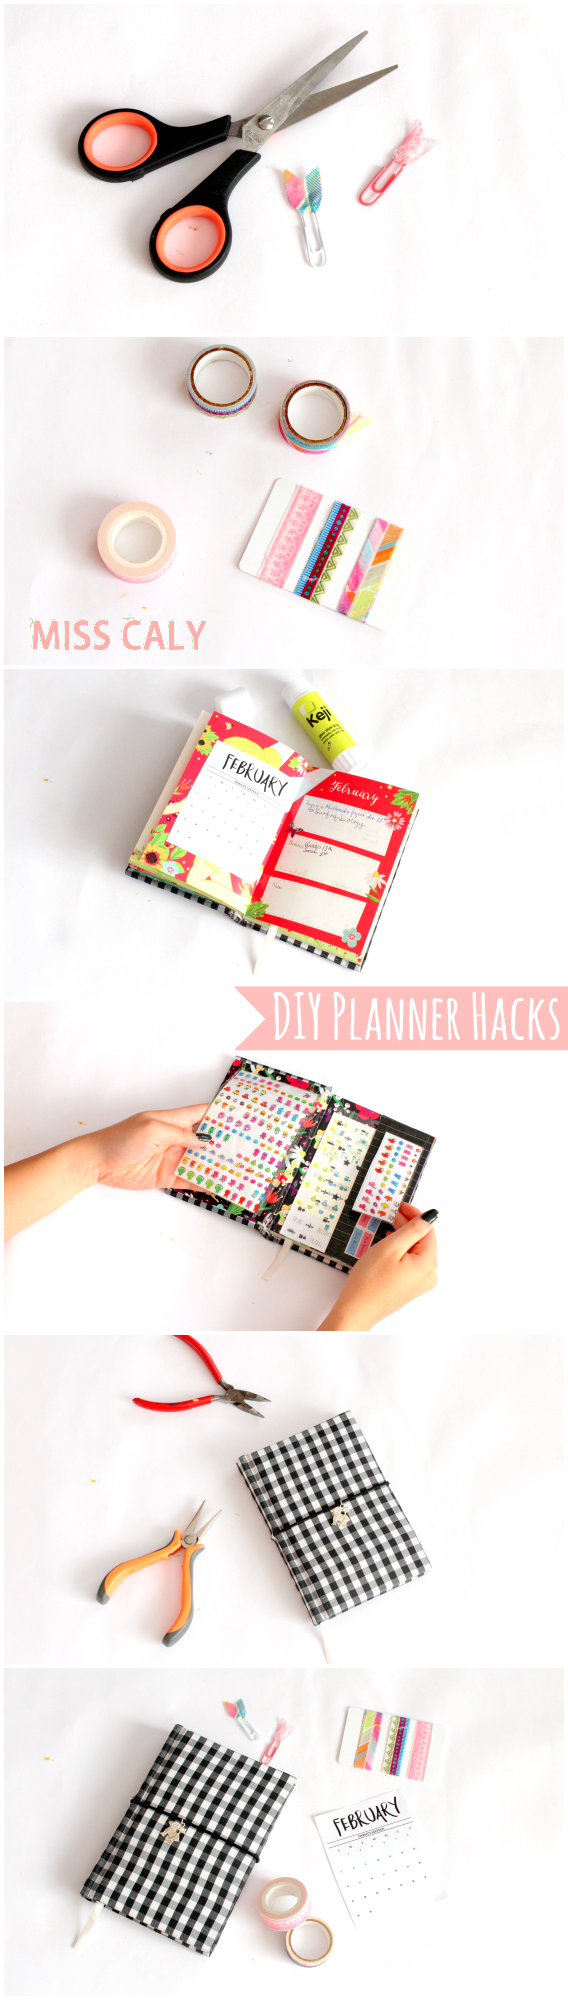 Easy DIY planner hacks you need to know! - Miss Caly